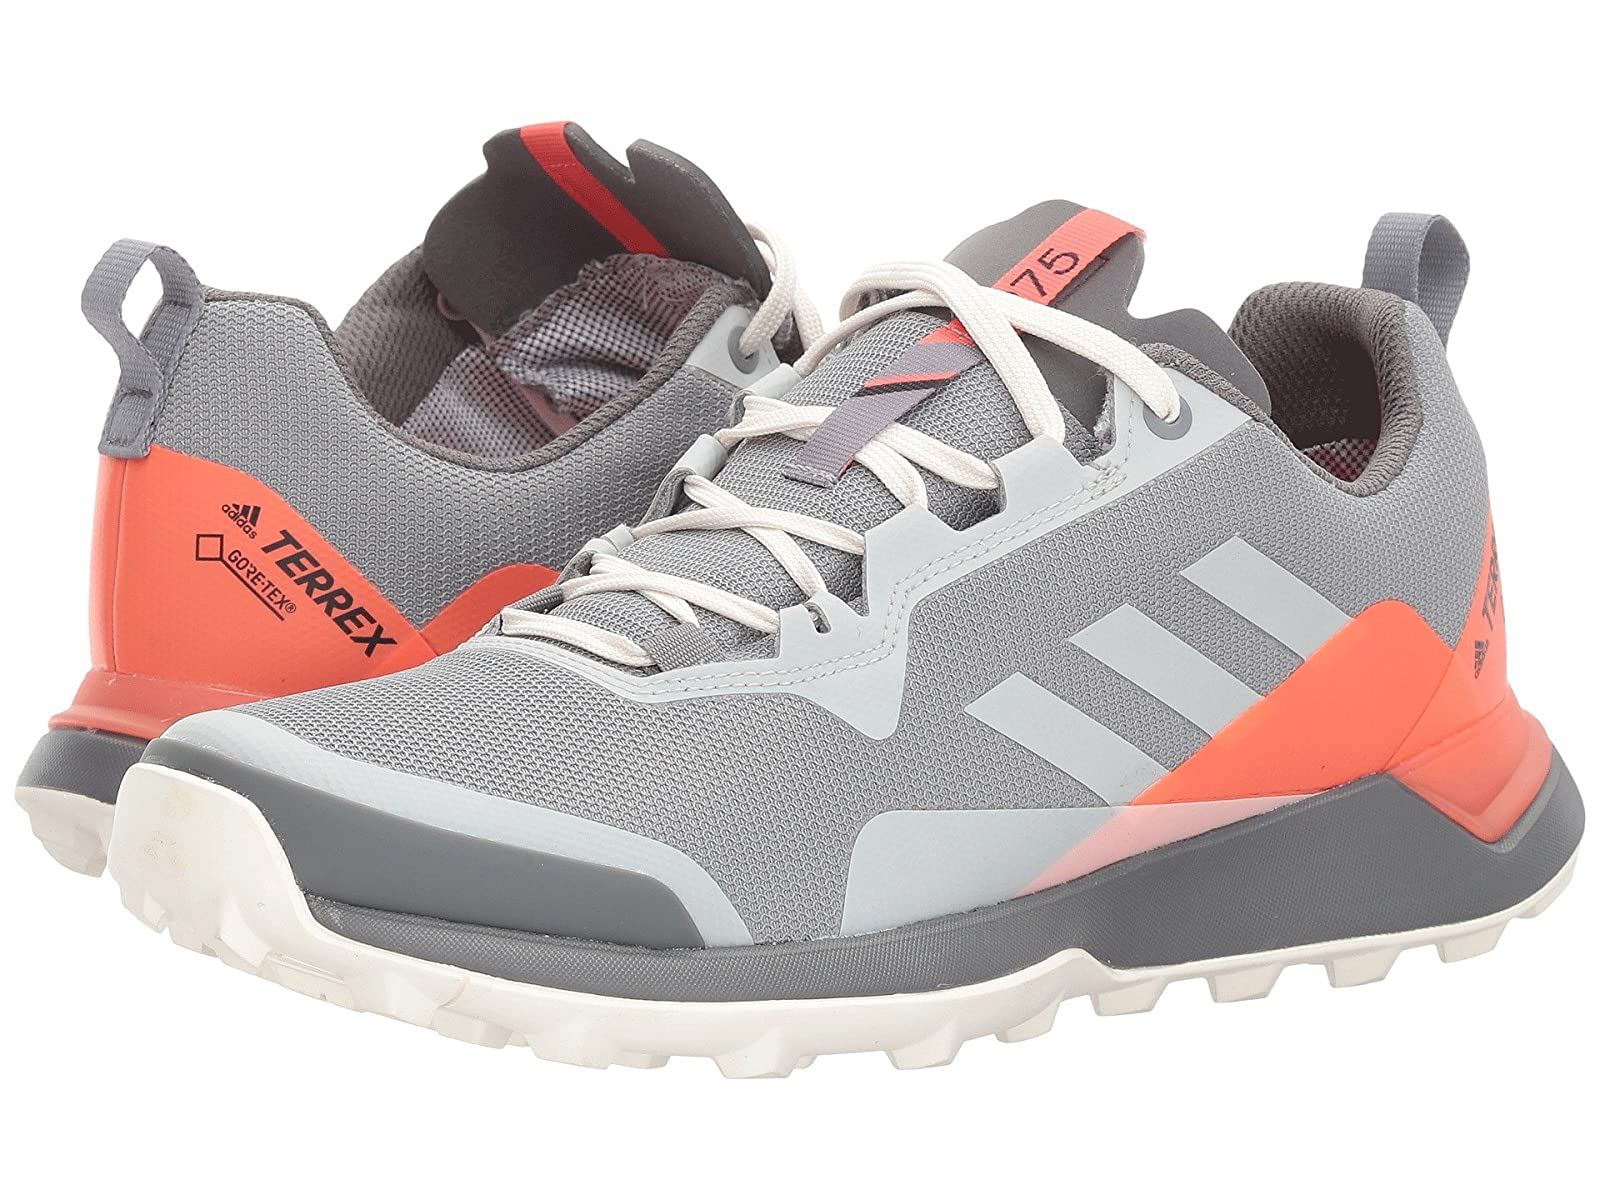 adidas Outdoor Terrex CMTK GTXStylish and characteristic shoes